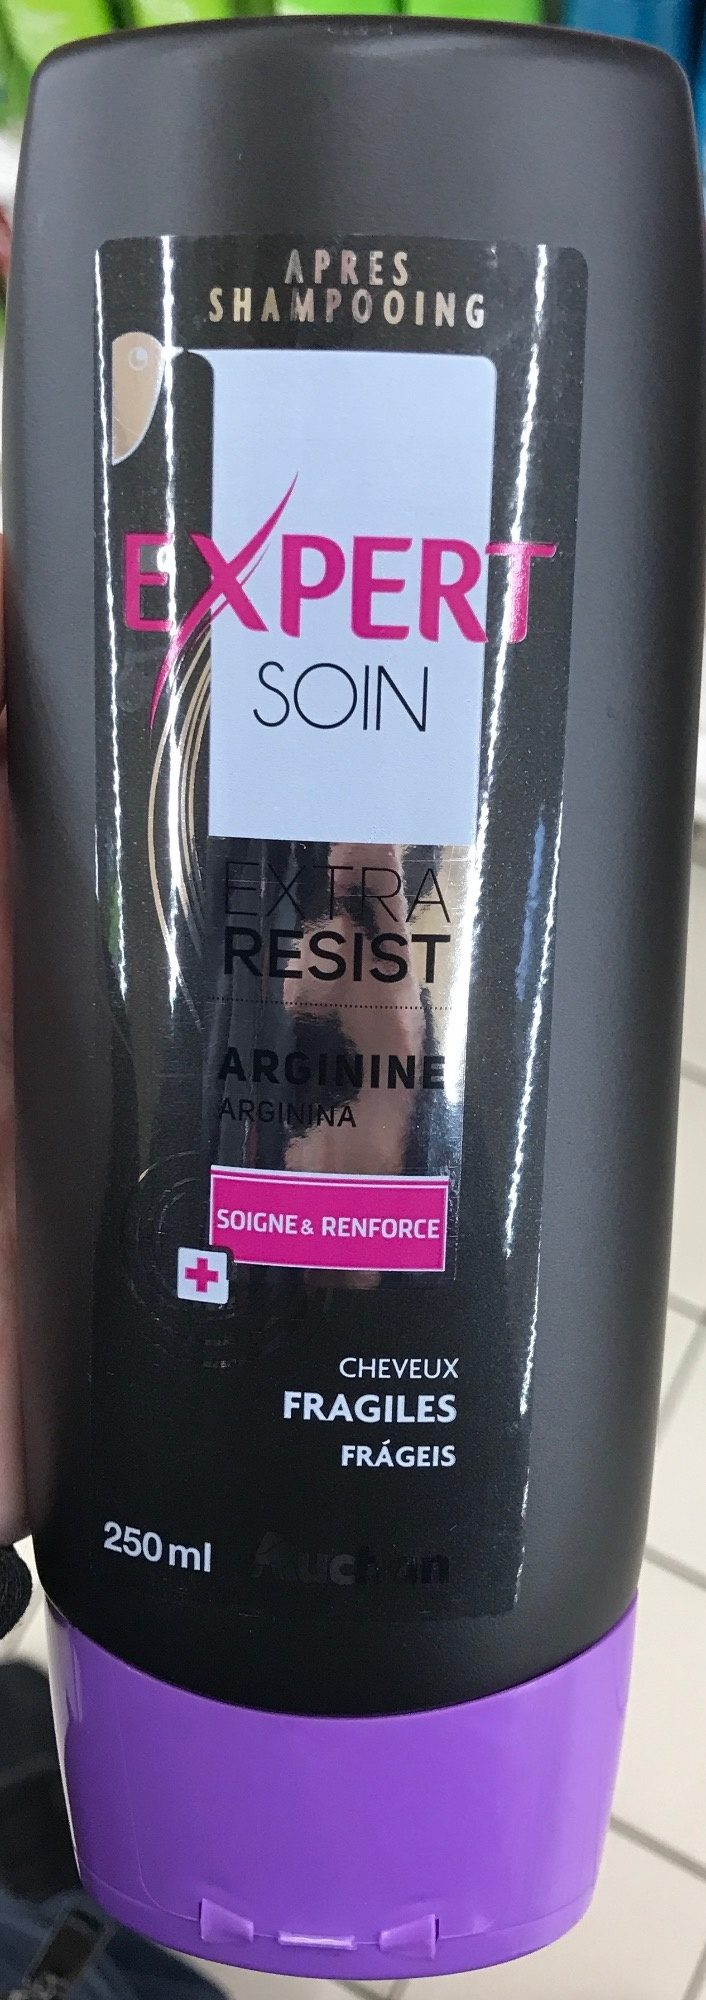 Après-shampooing Expert Soin Extra Resist - Product - fr